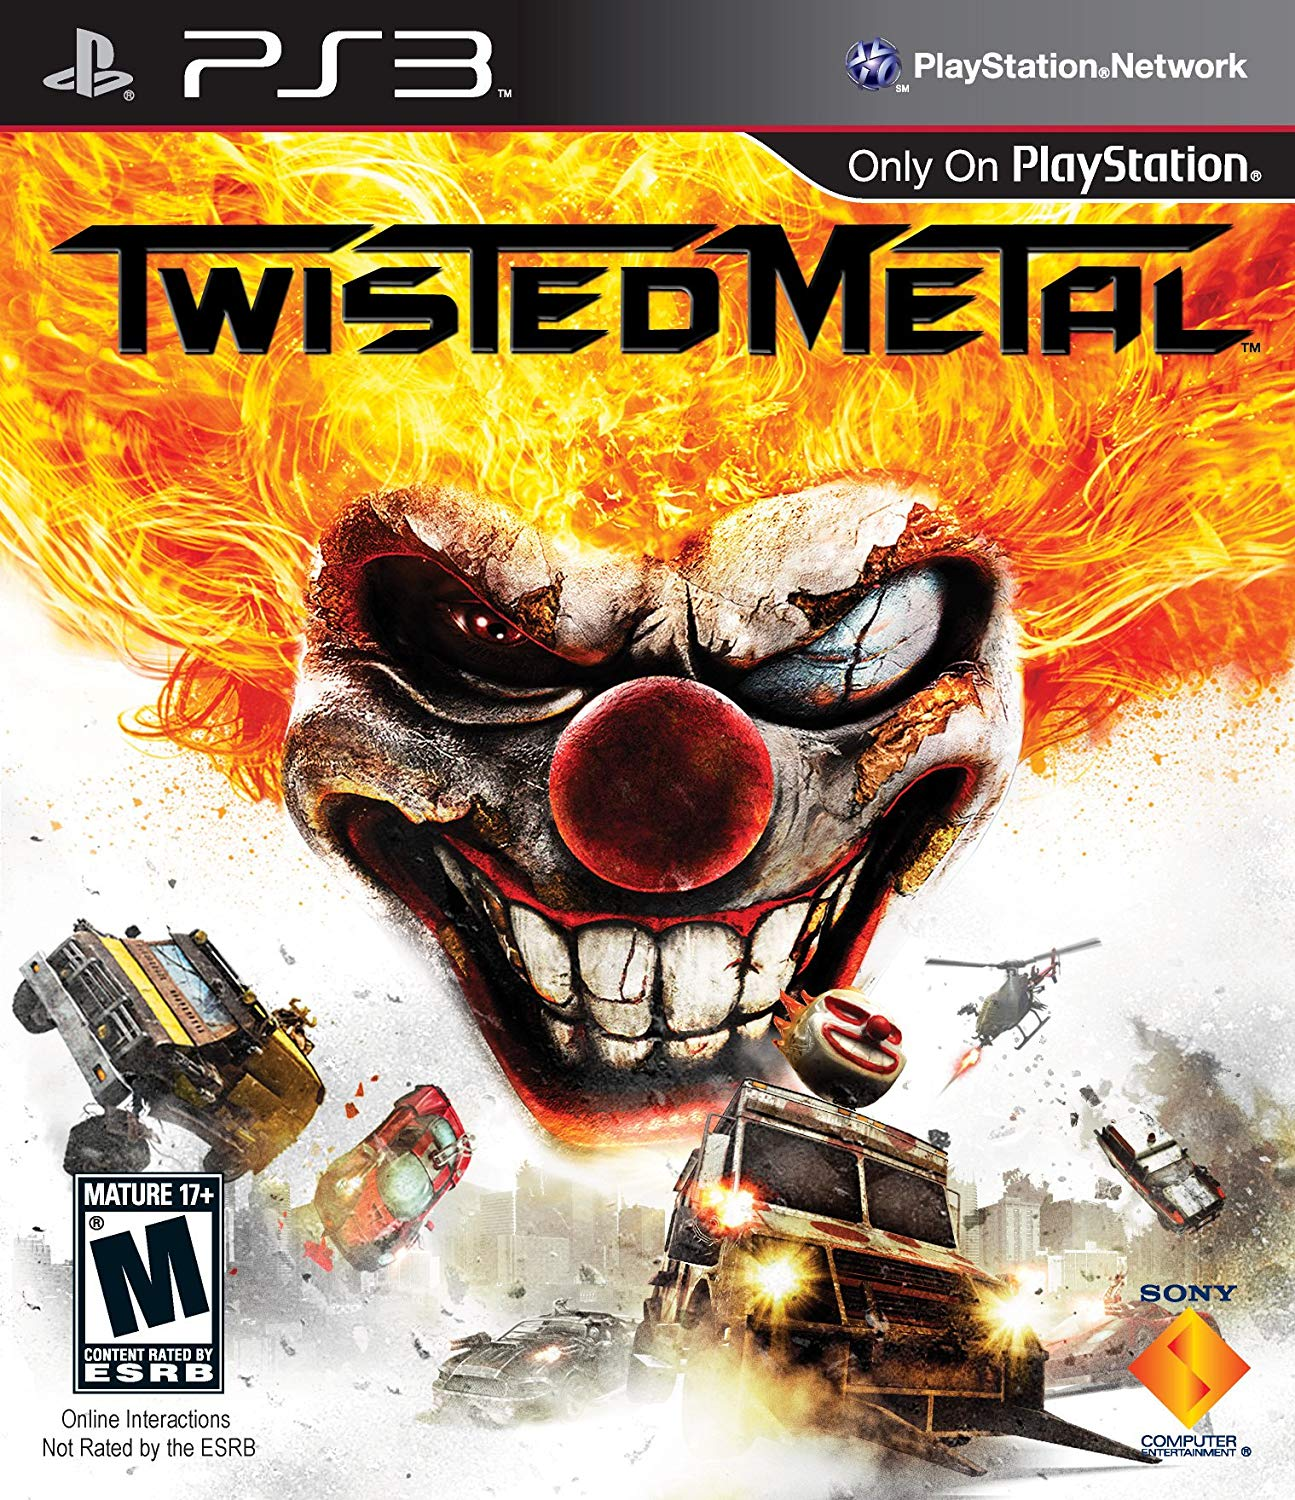 Amazon.com: Twisted Metal: Playstation 3: Sony Computer Entertainme ...